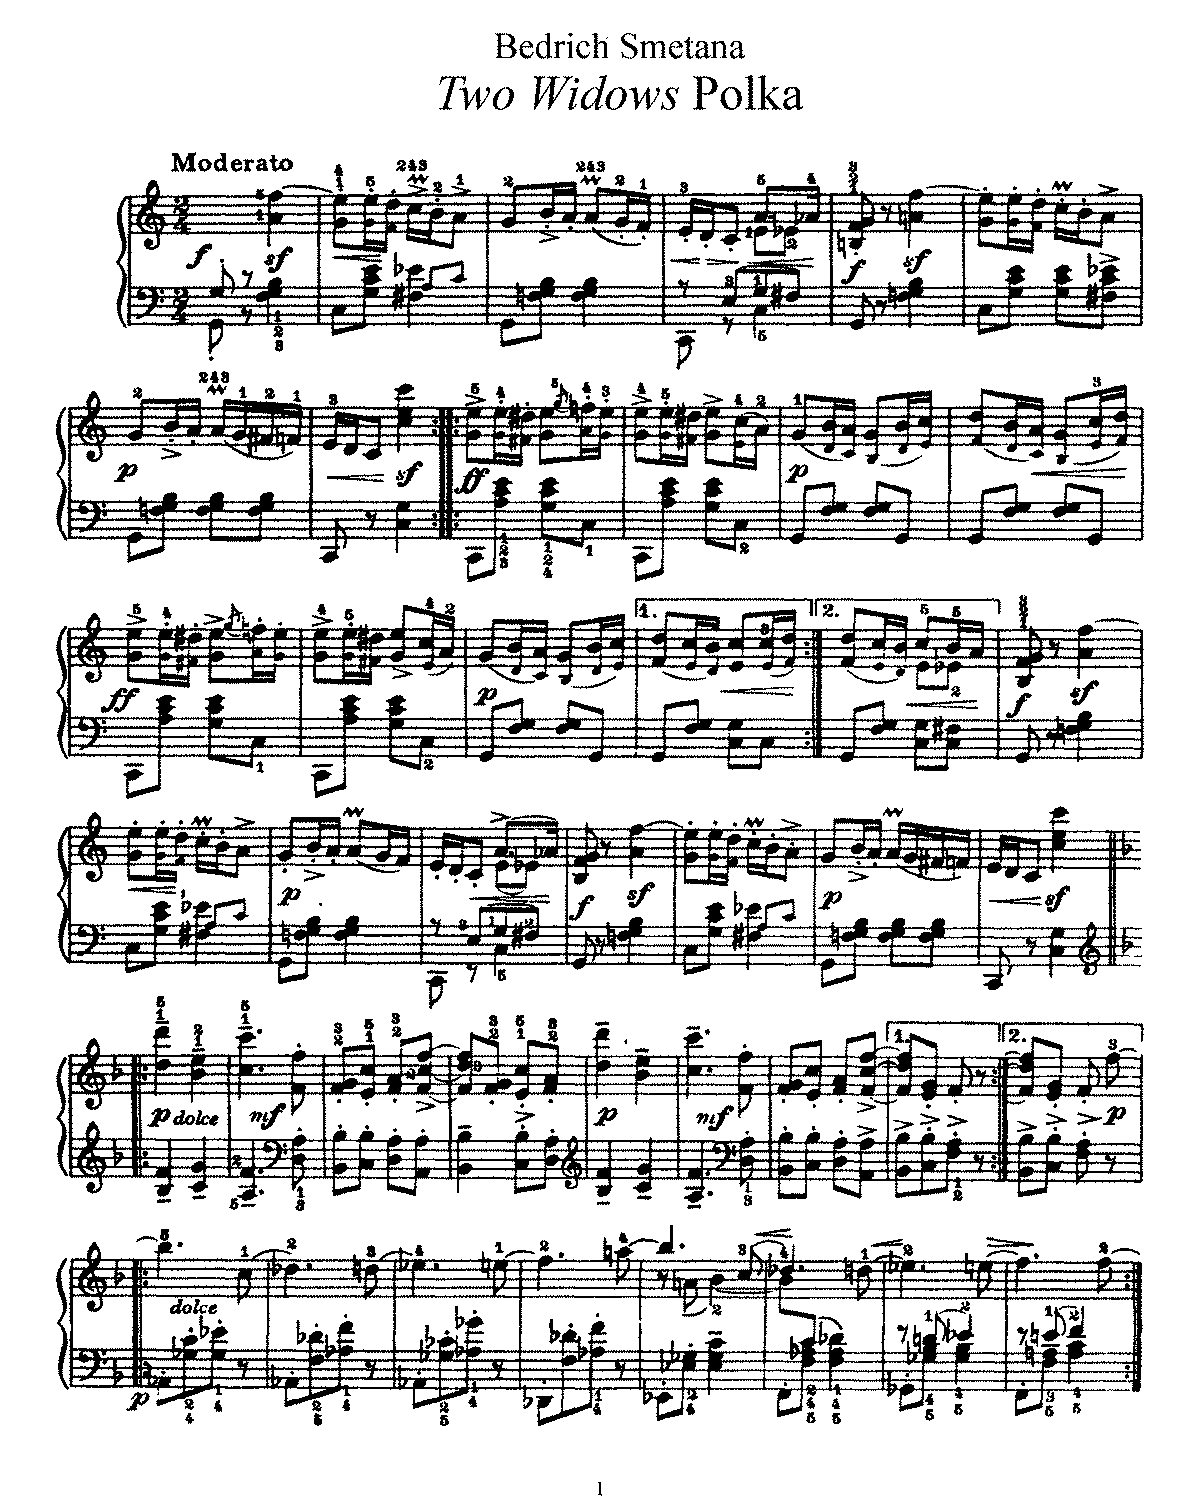 Smetana - Two widows polka.pdf